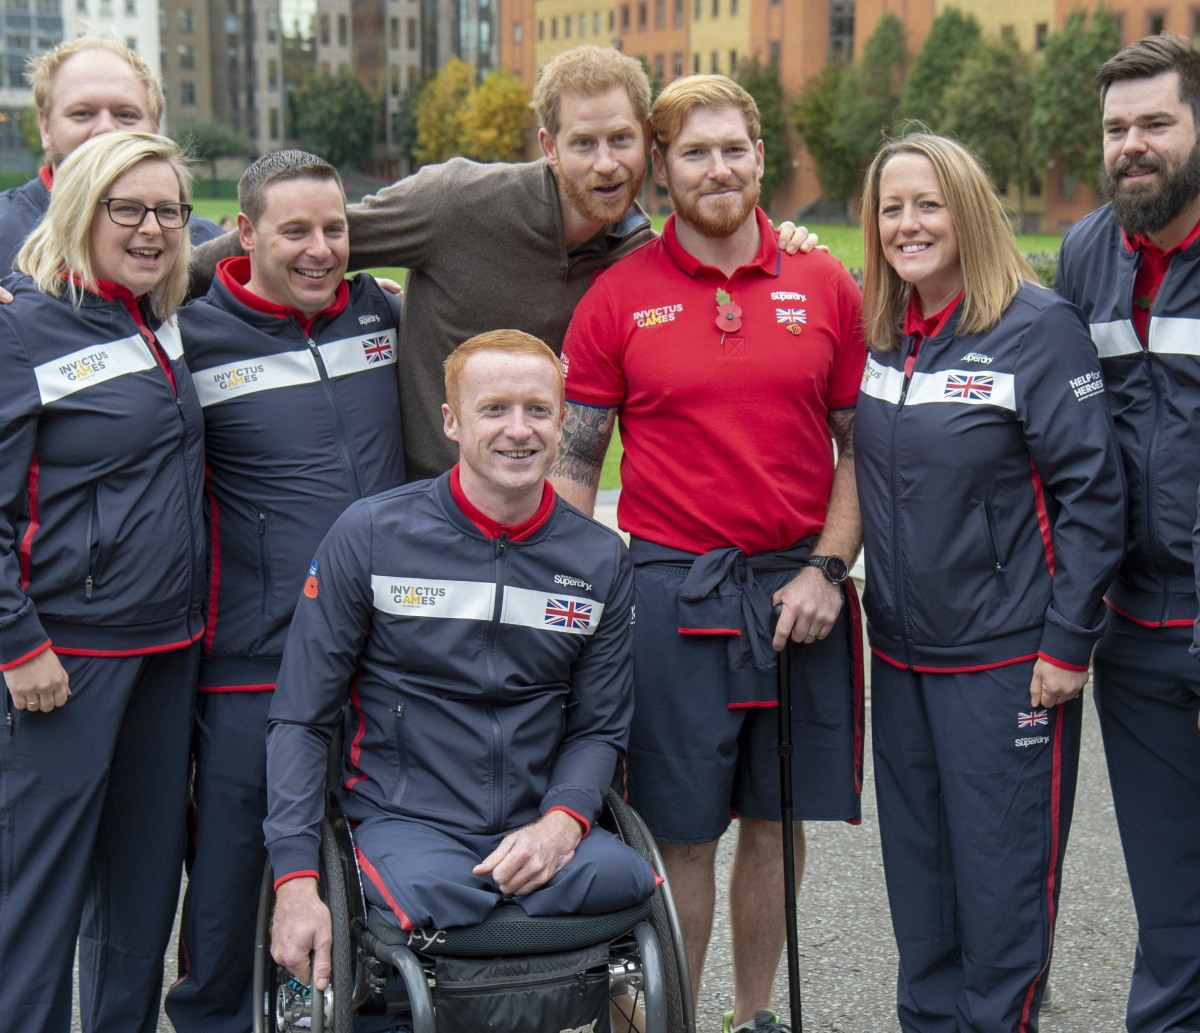 The Duke of Sussex will attend the launch of Team UK for the Invictus Games